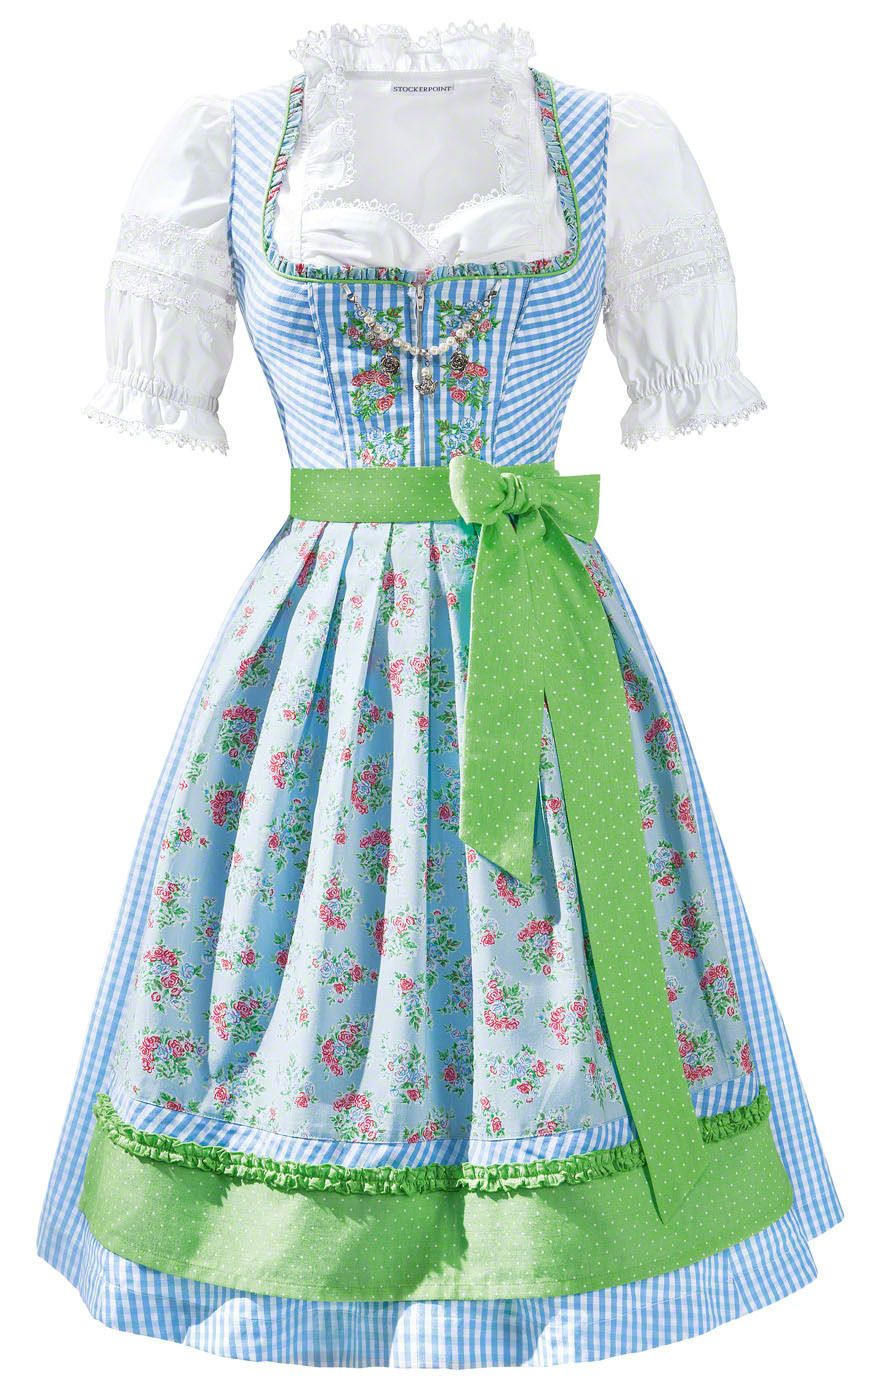 ab67aeafc1958d Details about Stockerpoint Midi dirndl 2 parts Faye light blue 27.6 ...